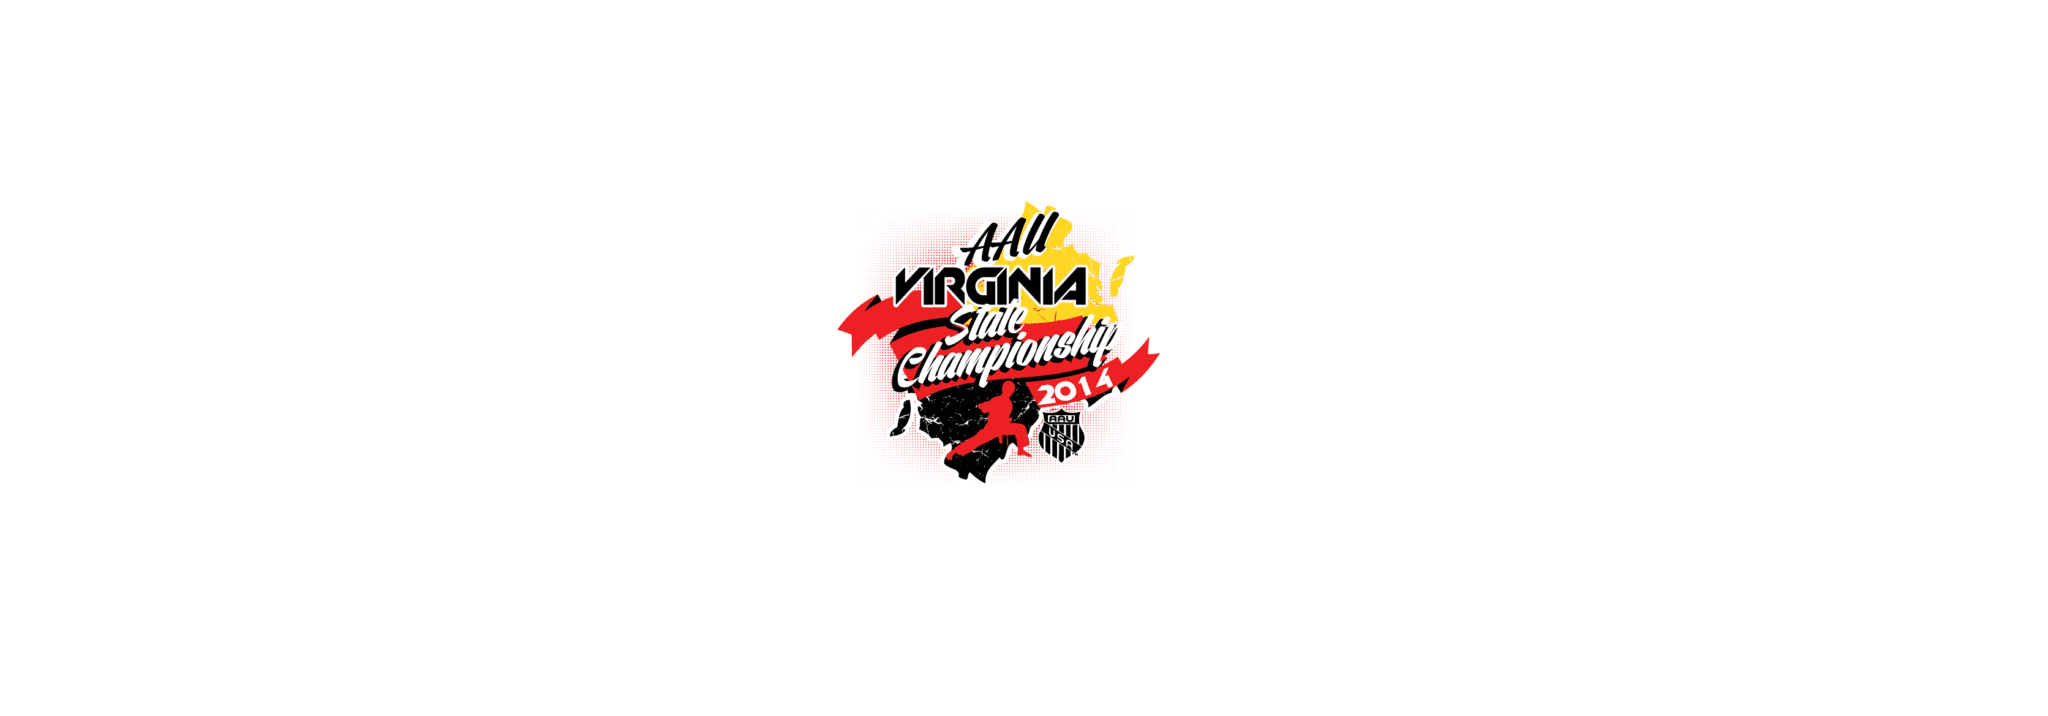 VECTOR LOGO DESIGN FOR PRINT AAU VIRGINIA STATE CHAMPIONSHIP MARTIAL ARTS EVENT